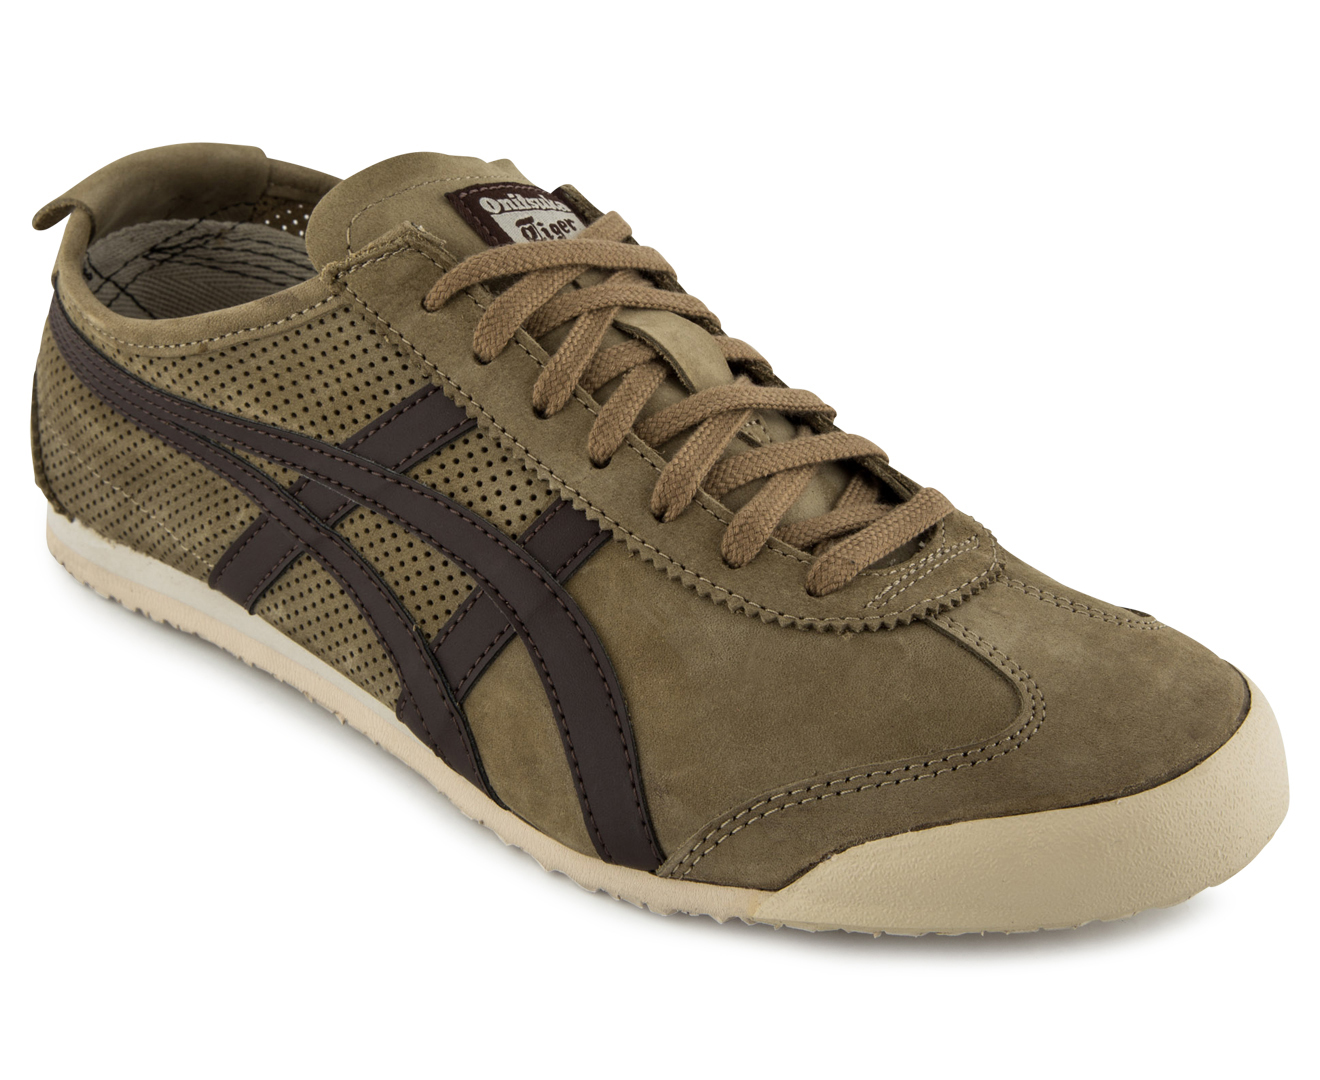 classic fit e4506 37427 Onitsuka Tiger Men's Mexico 66 Shoe - Light Brown/Dark Brown